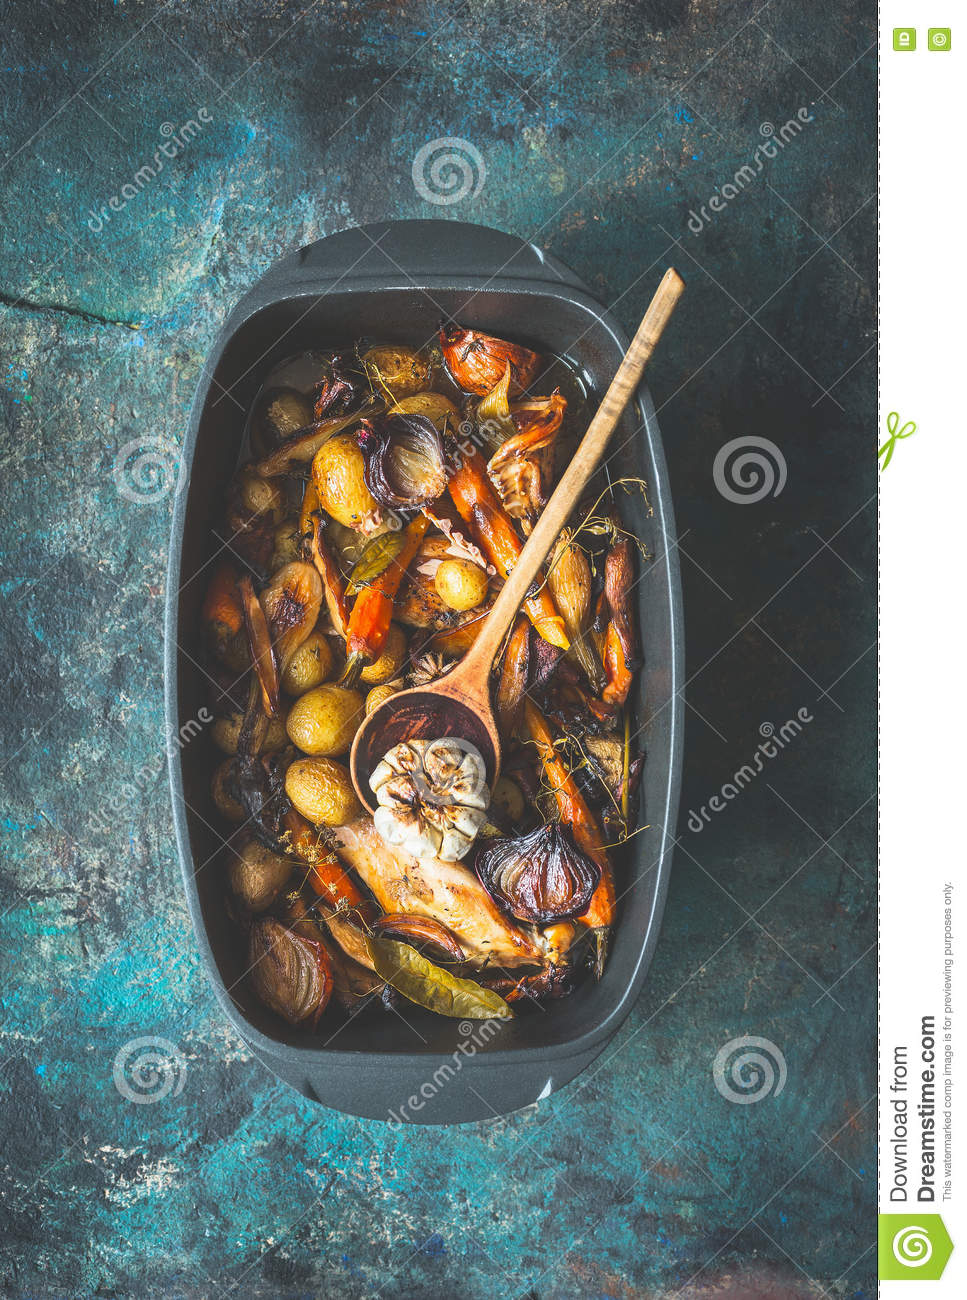 Very rustic roasted vegetables stew or ragout with wild game and wild fowl and forest mushrooms in black backing dish with wooden